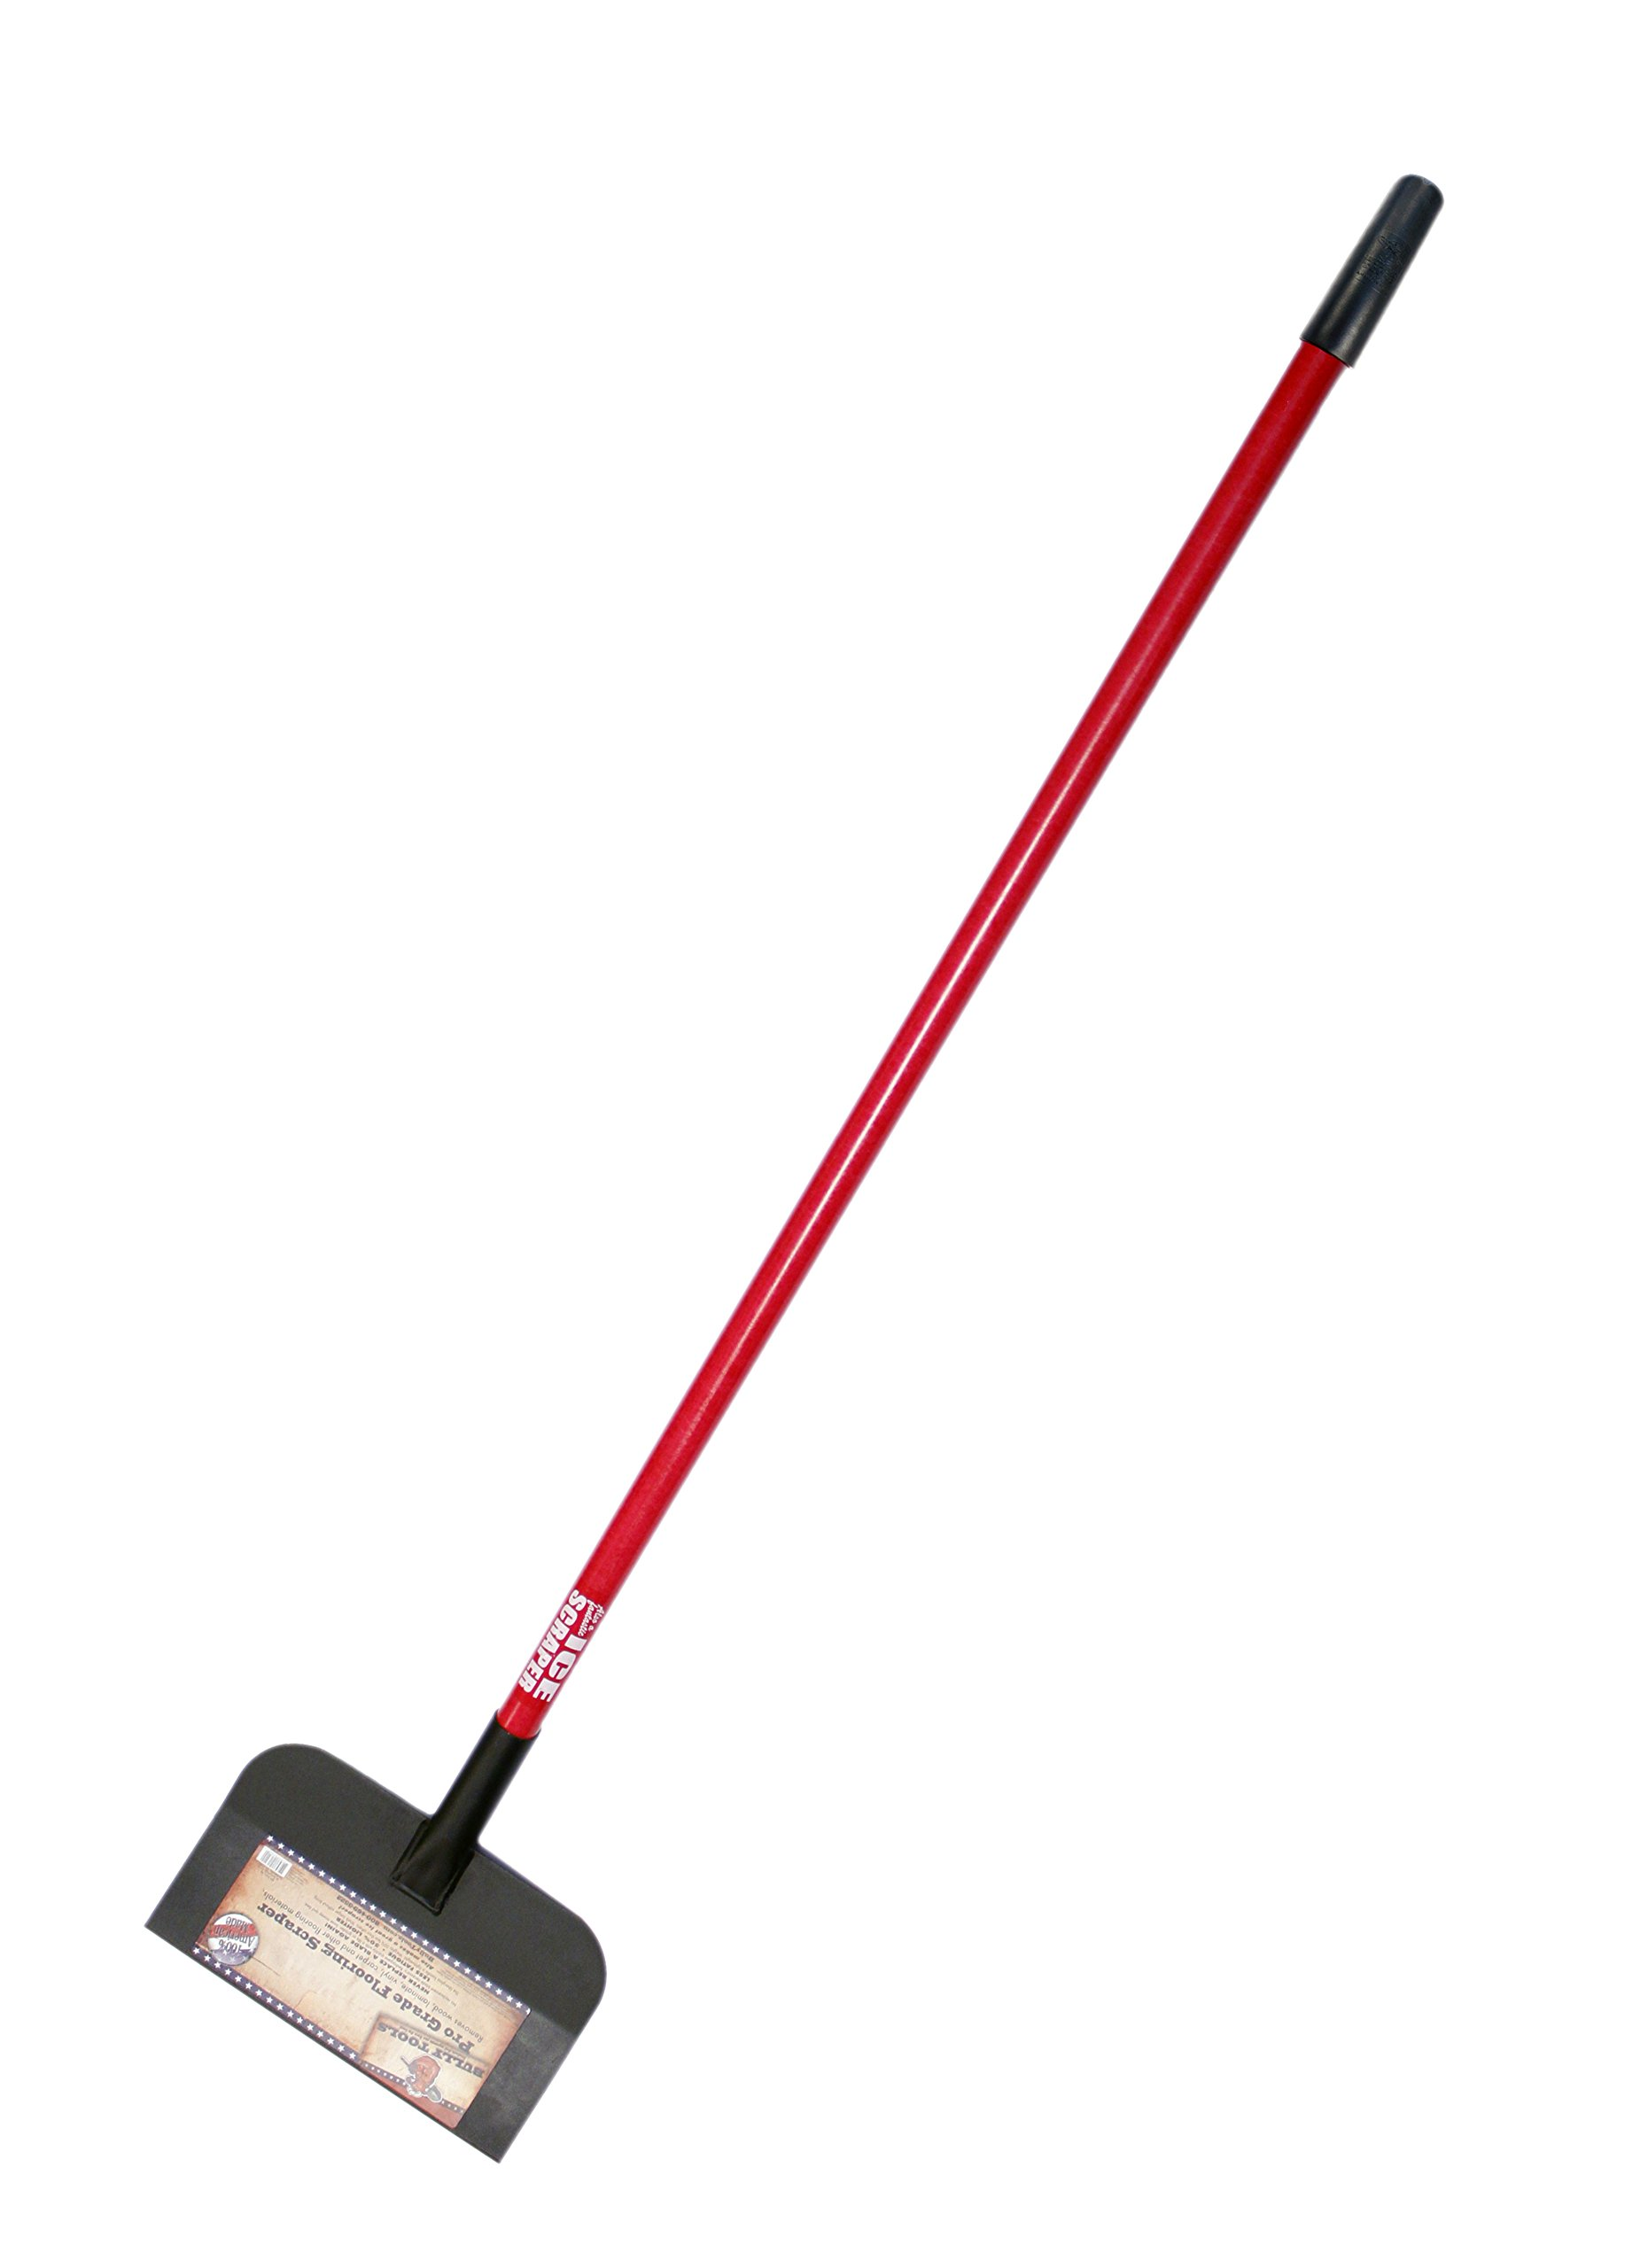 Bully Tools 91340 Big Bully 12-Inch Steel Flooring Scraper with Fiberglass Long Handle